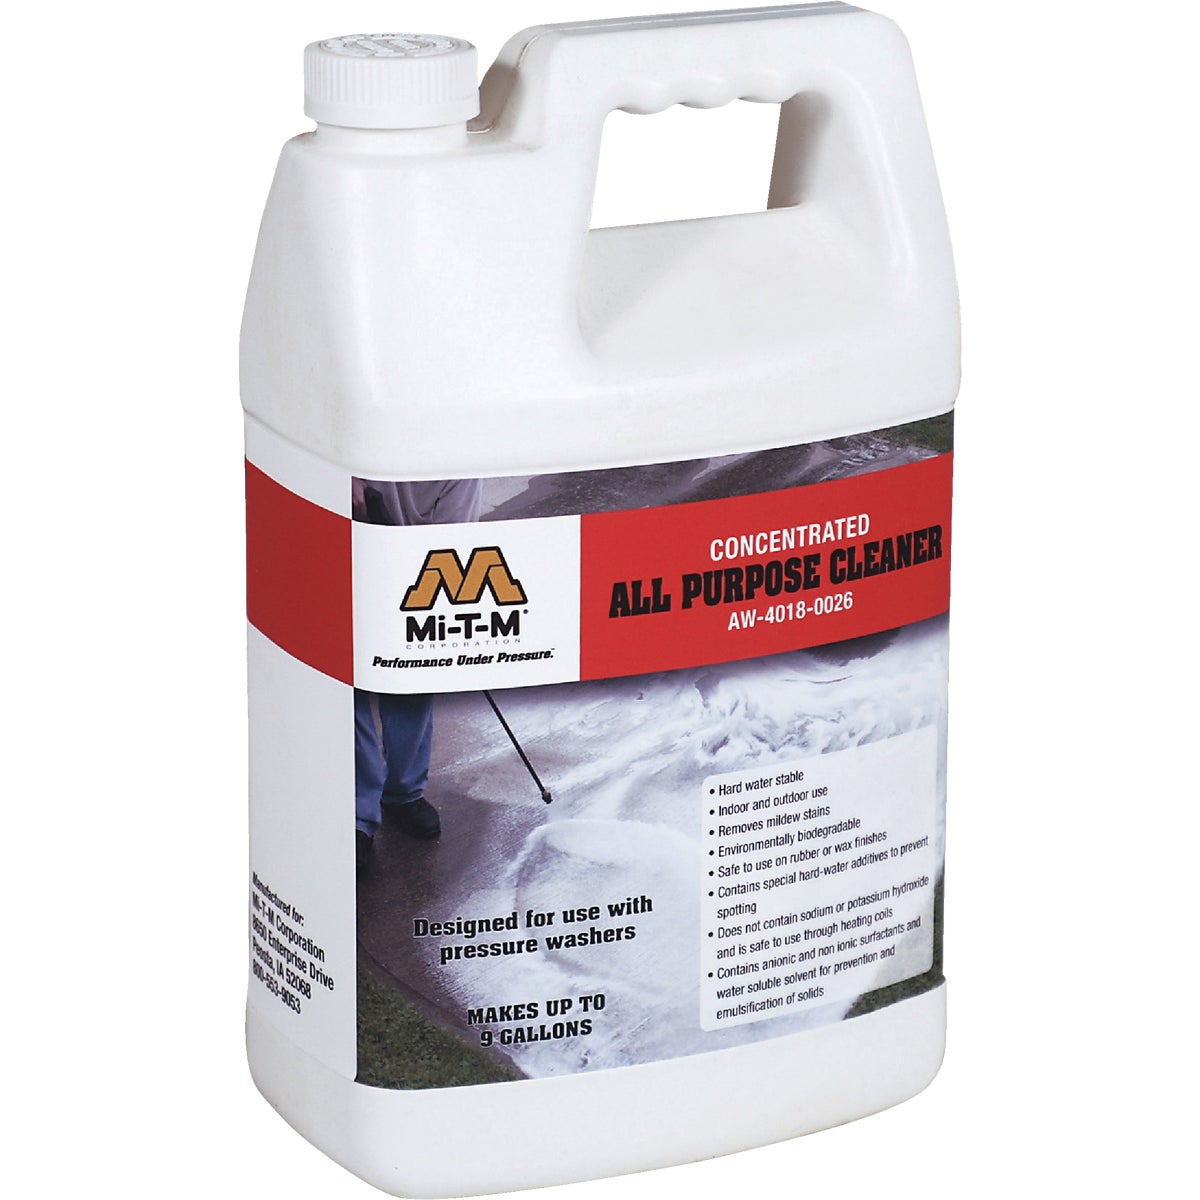 GAL ALL PURPOSE CLEANER - AW-4018-0026 by Mi T M Corp